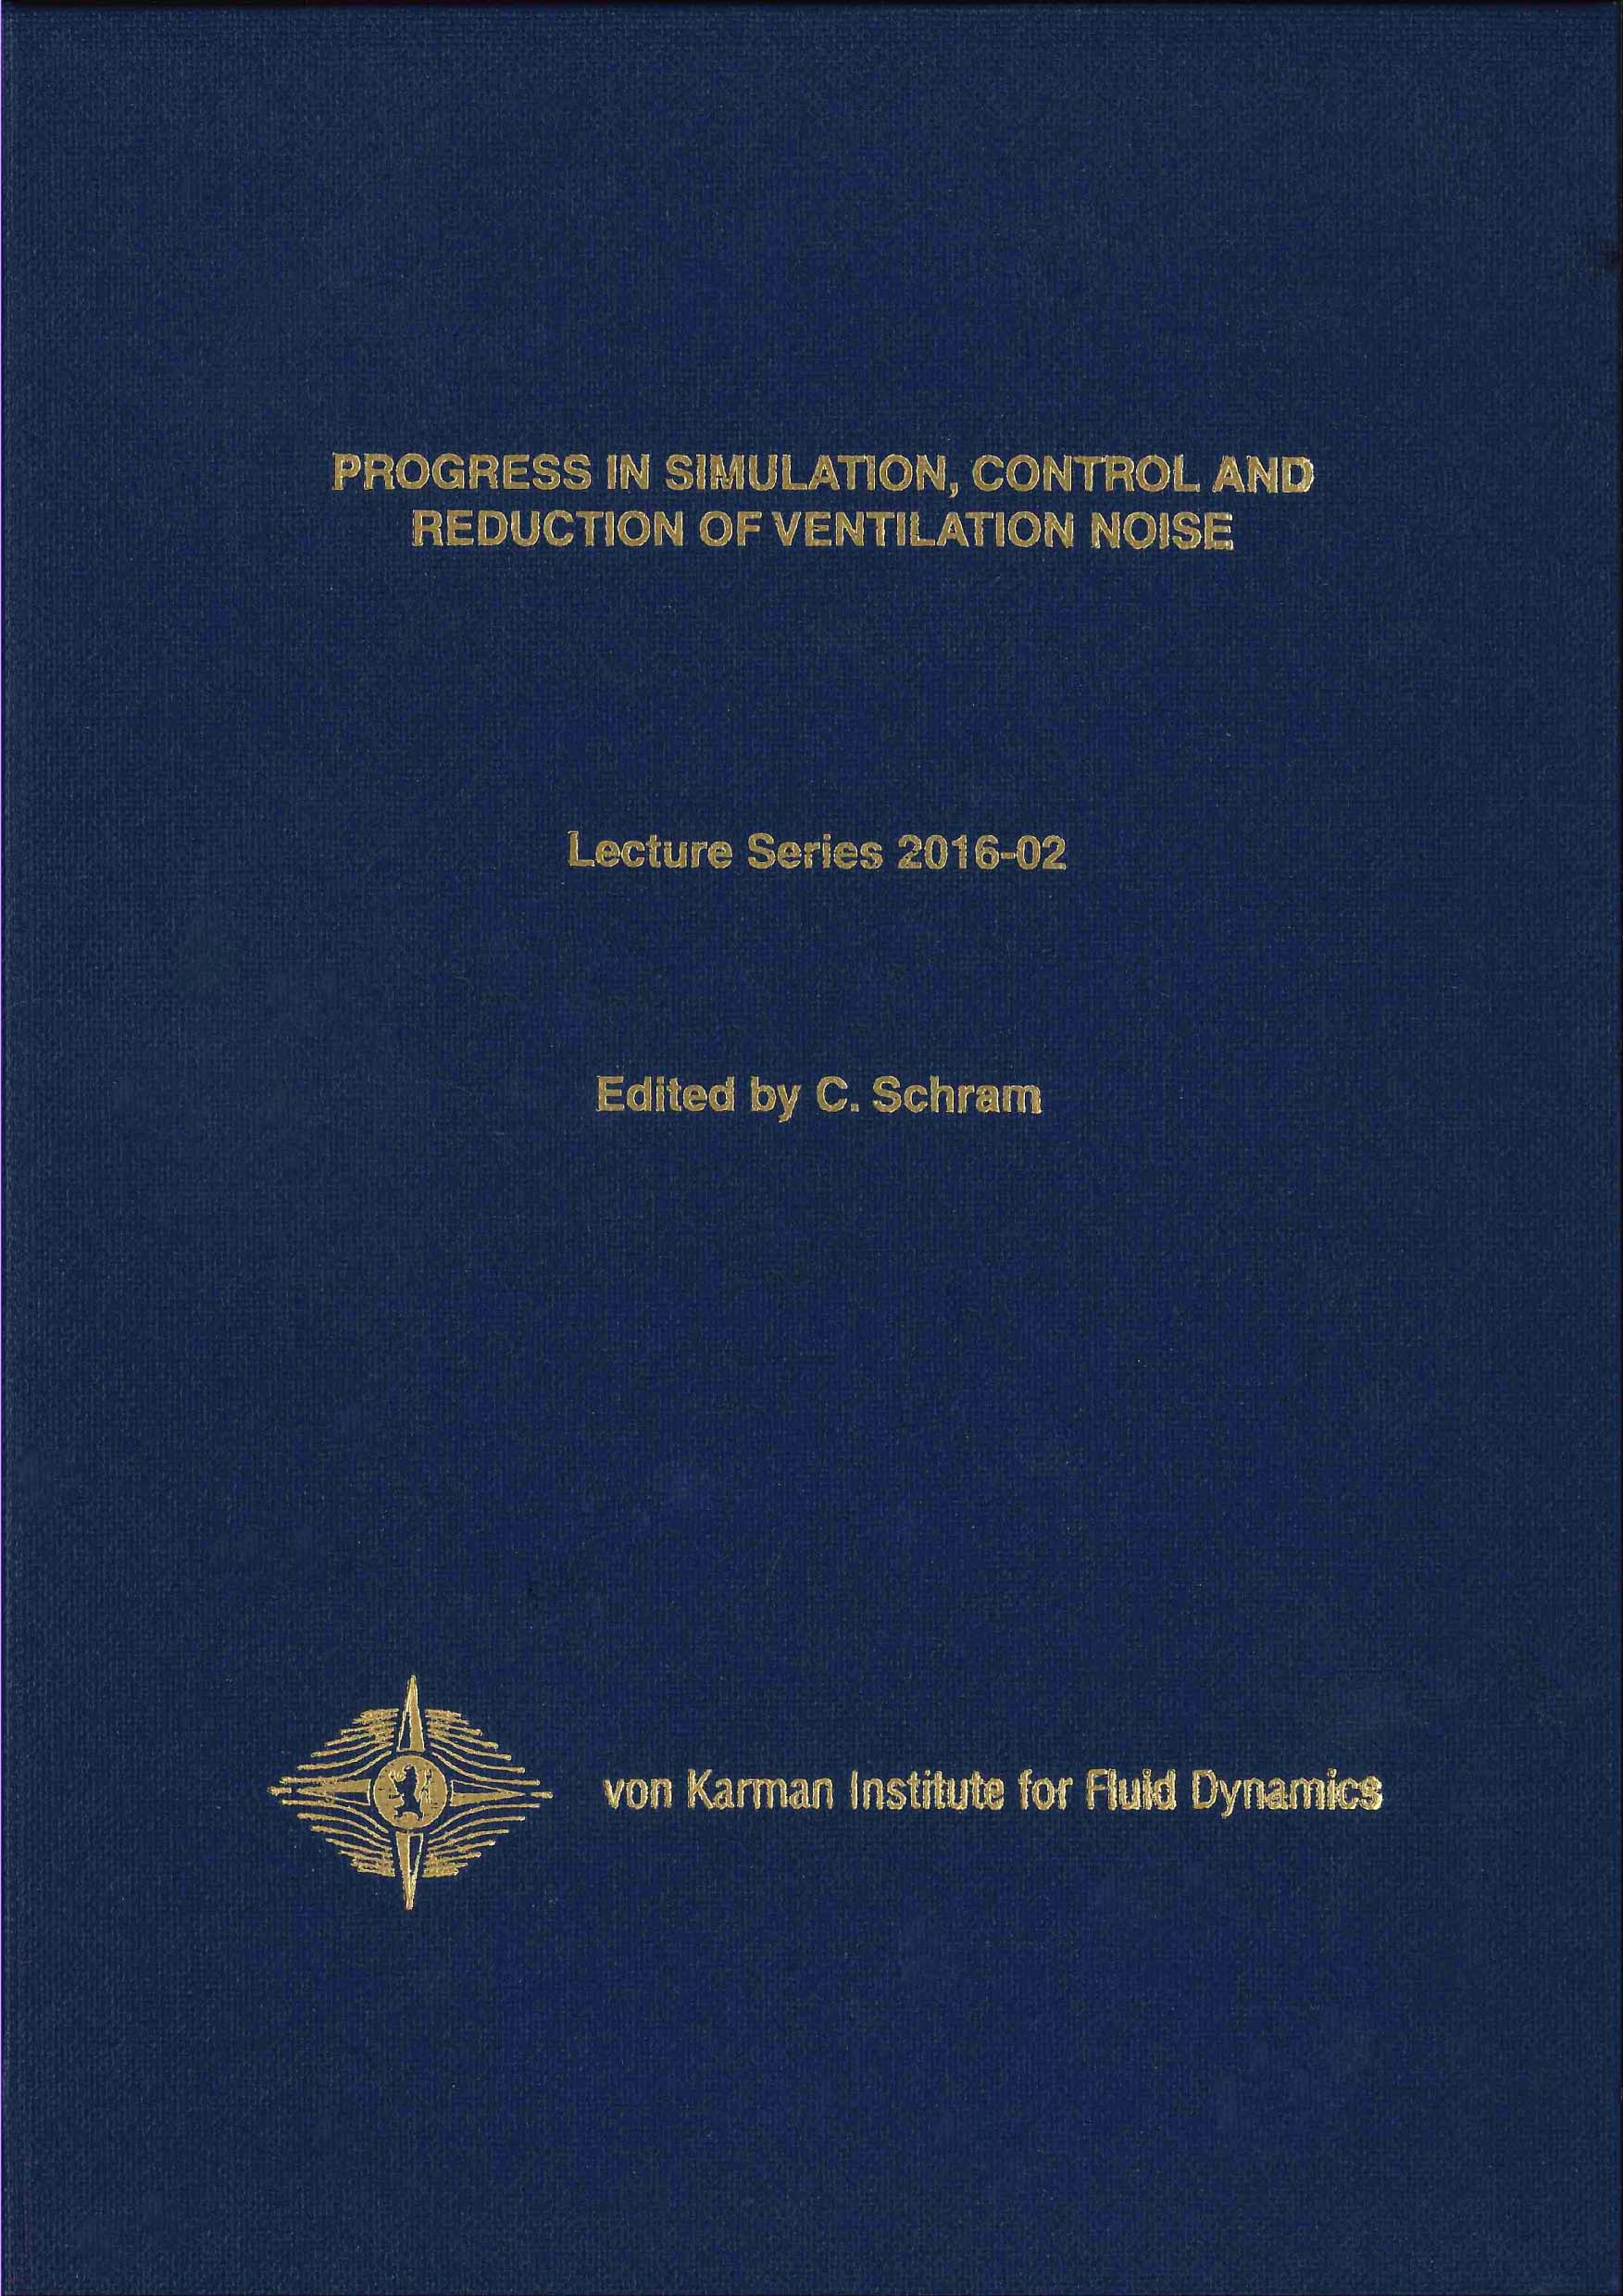 Progress in simulation, control and reduction of ventilation noise-hardcover - VKI LS 2016-02